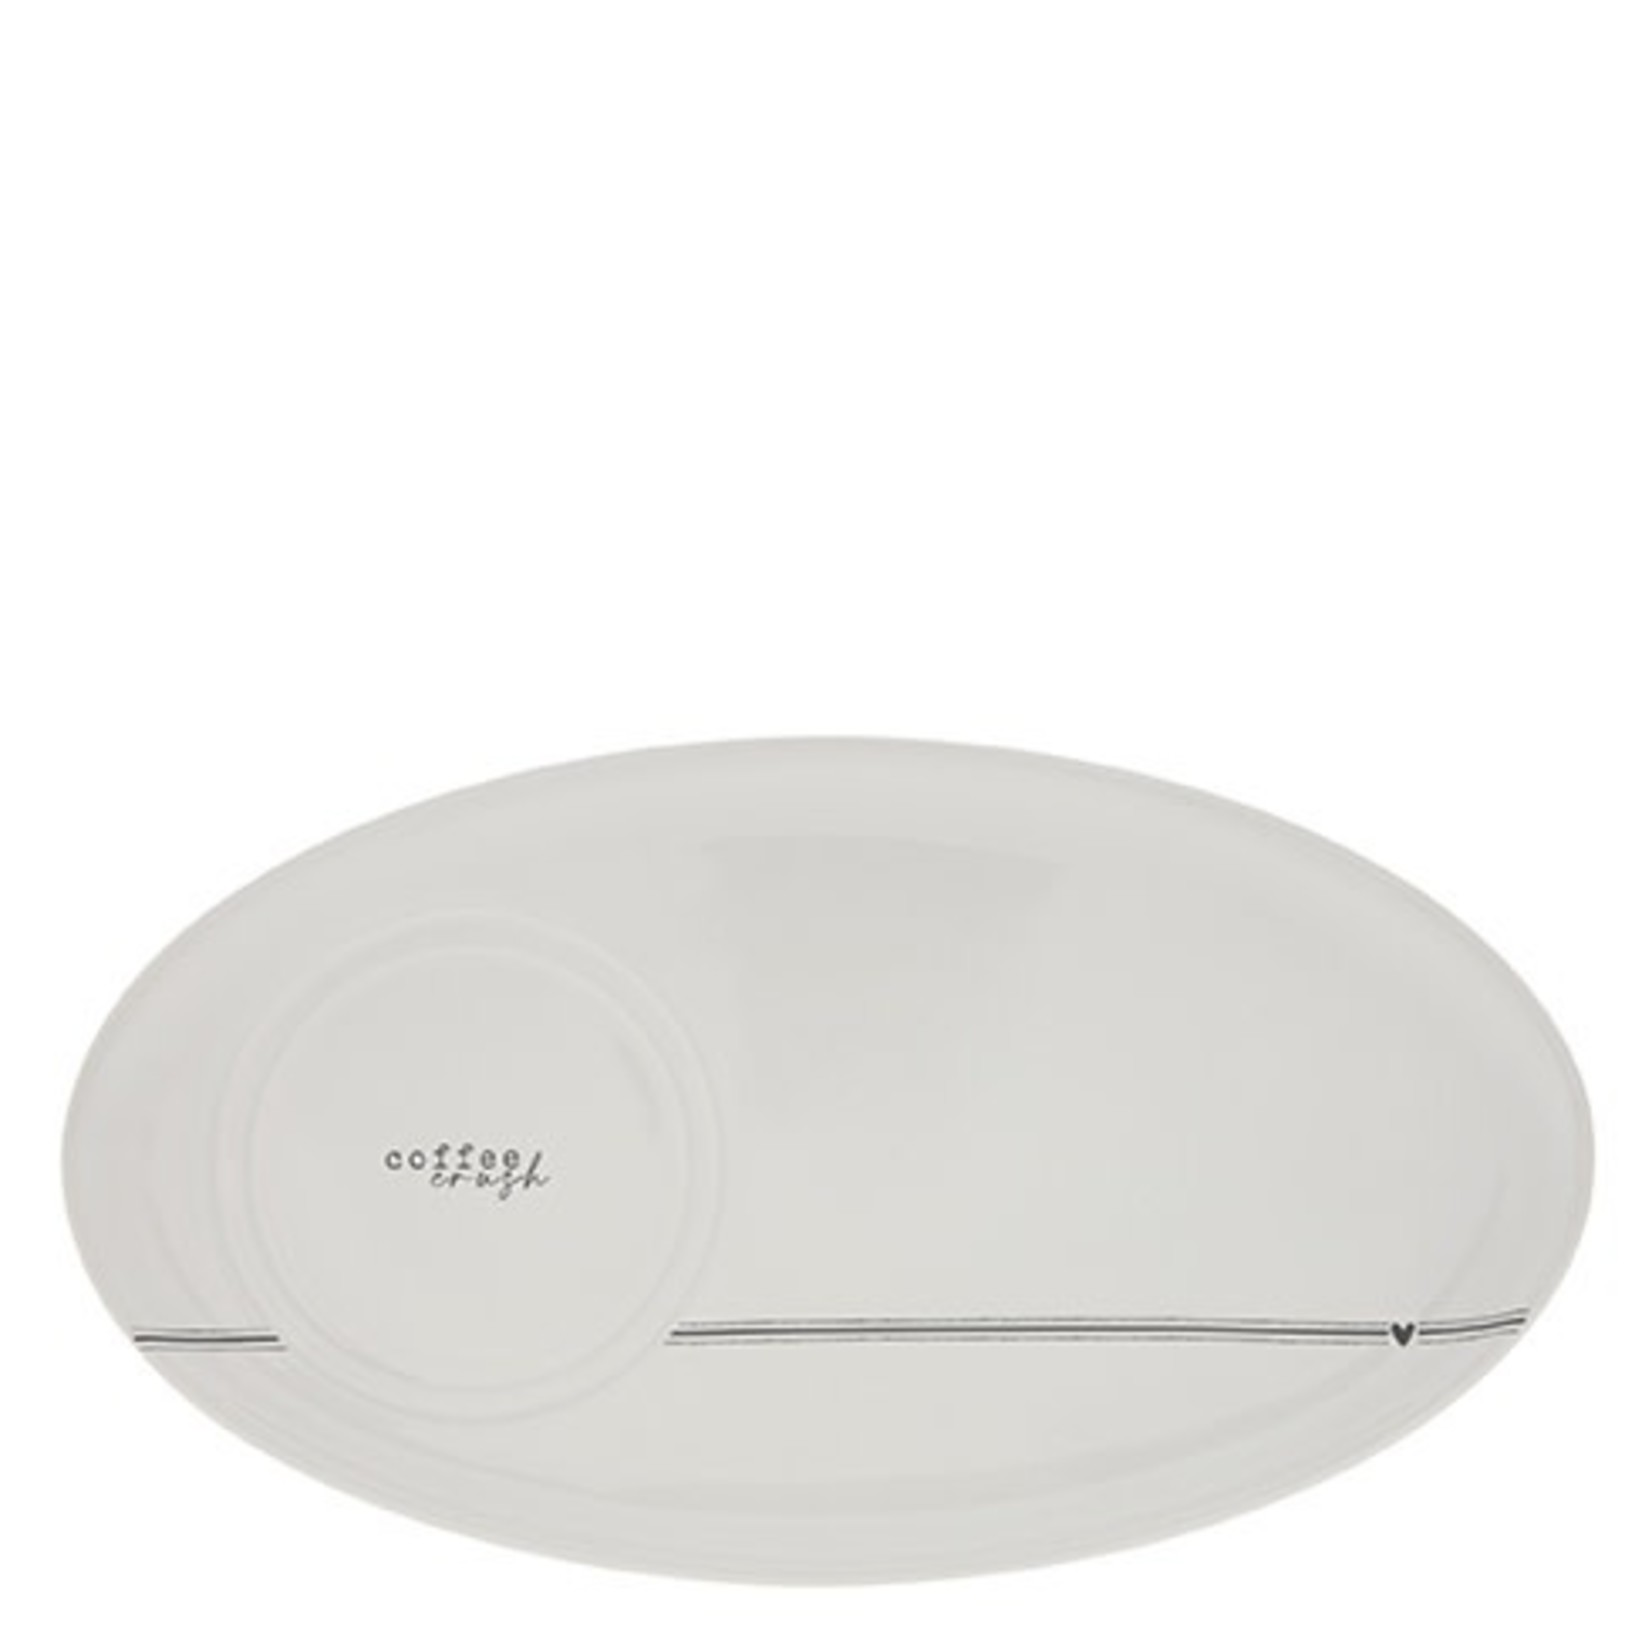 Bastion Collections Oval Plate White  Coffee Crush in Black